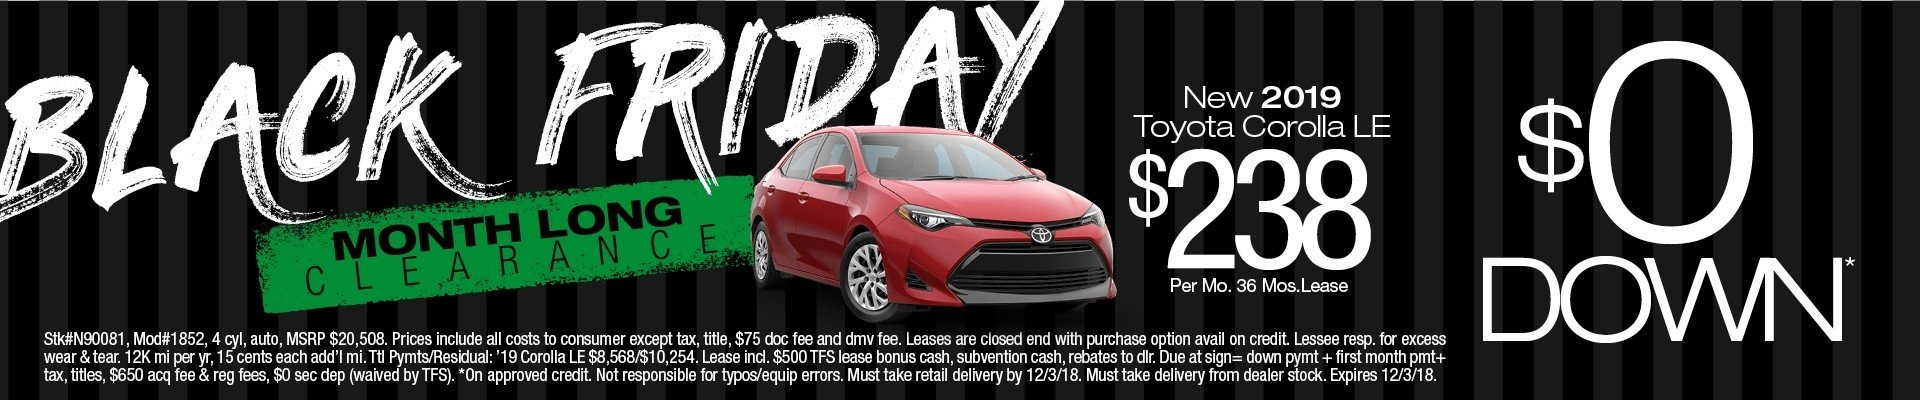 2019 Toyota Corolla Lease $0 Down